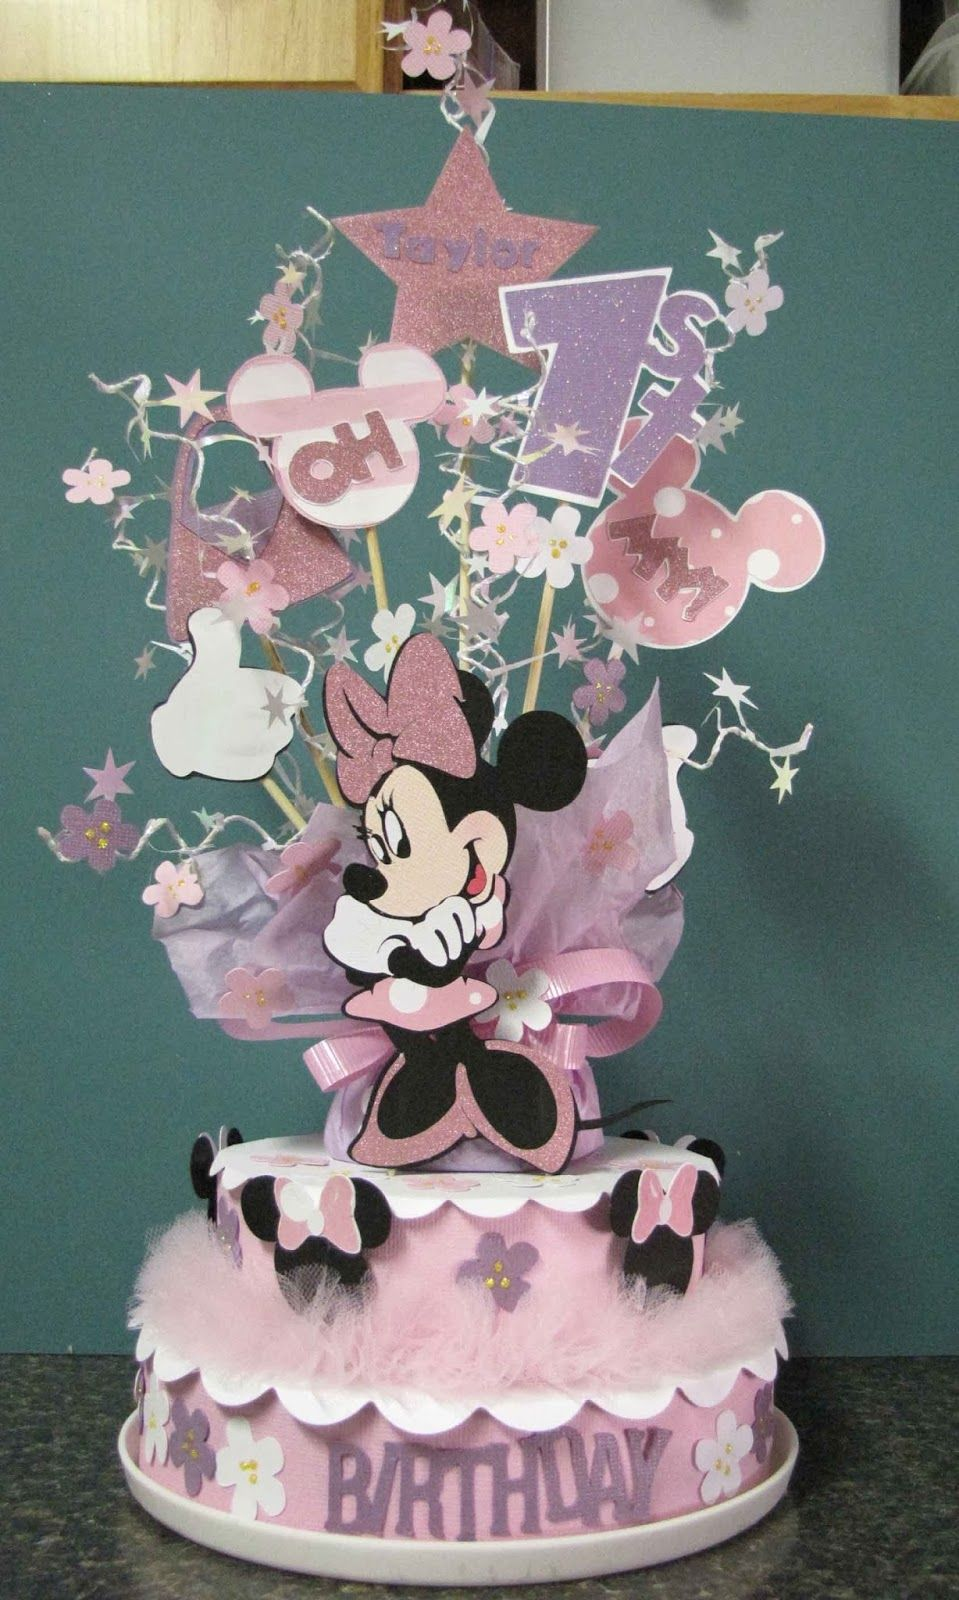 Mimi S Craft Room Minnie Mouse Birthday Decoration For A Modern Kitchen Decor In 2020 Minnie Mouse Birthday Minnie Mouse Birthday Decorations Minnie Mouse Party